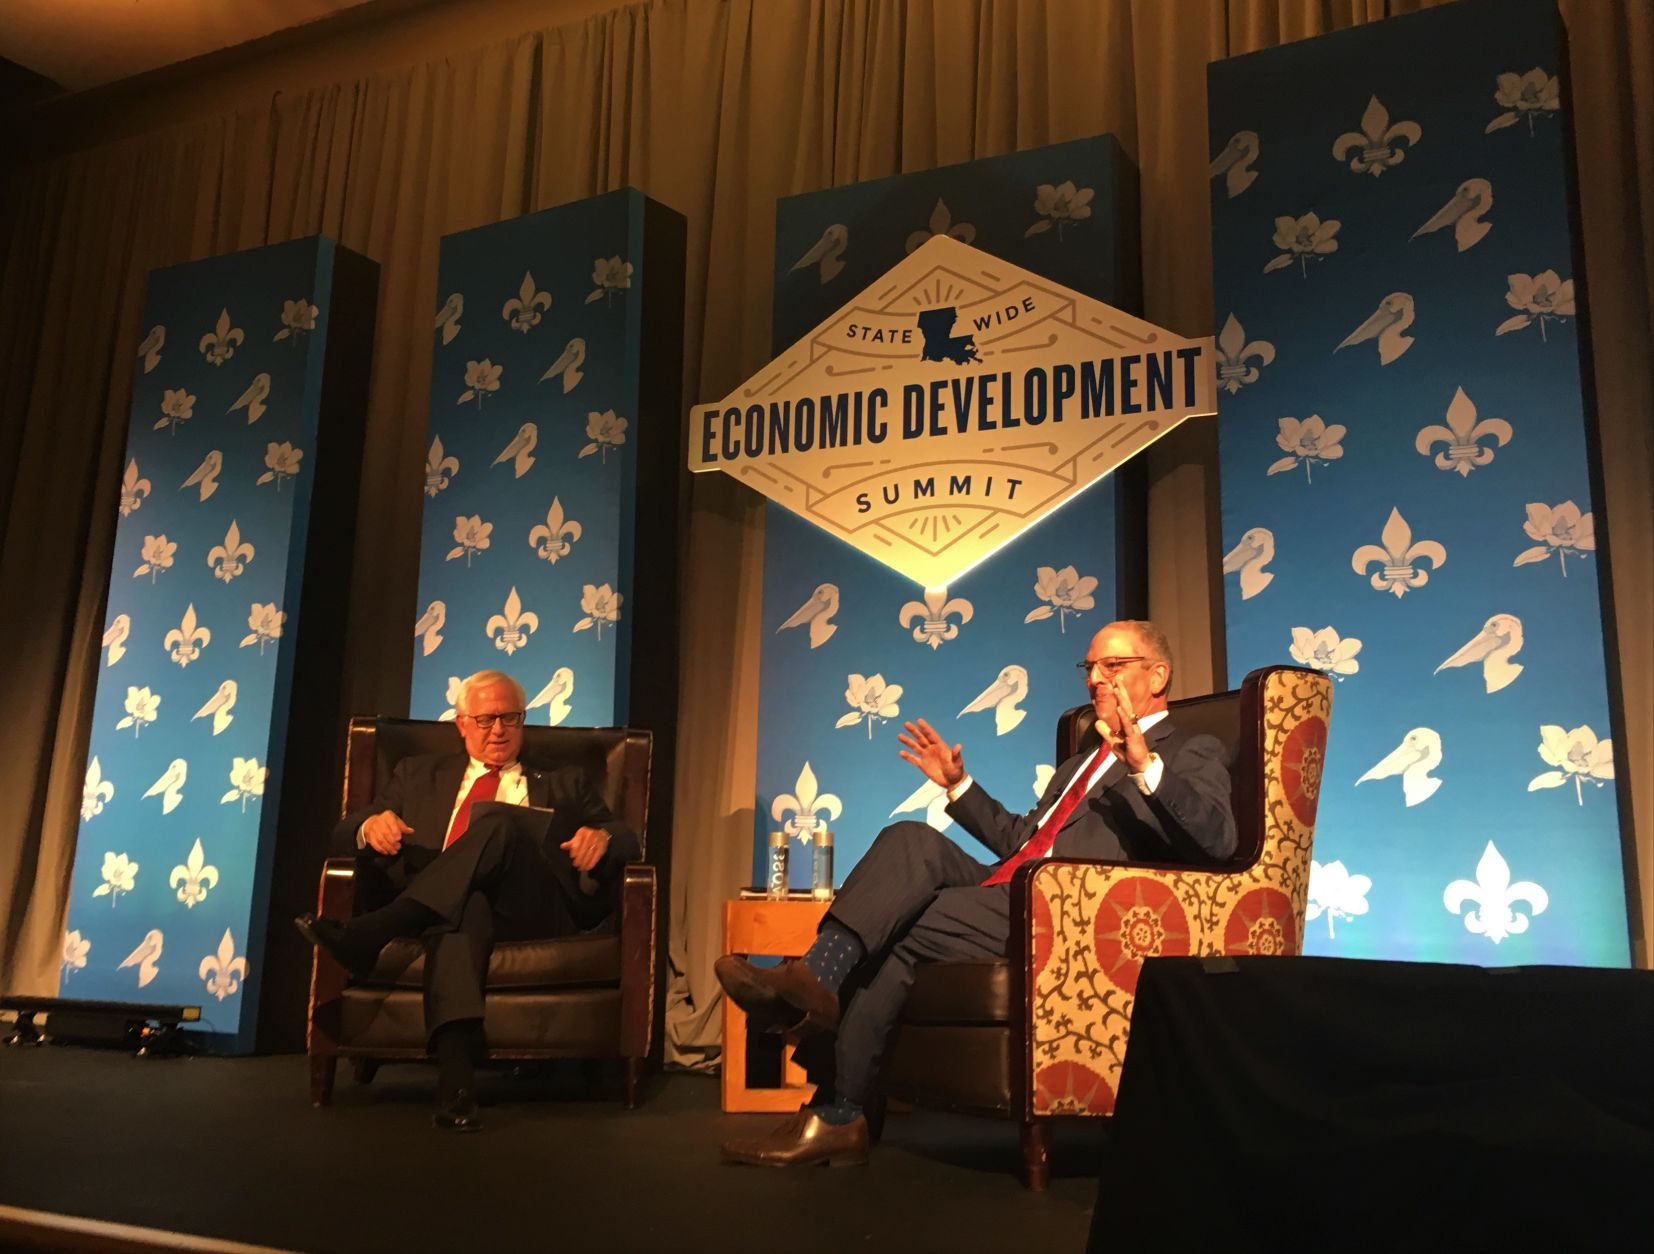 Governor fields questions from business community, while Rispone skips Baton Rouge forum